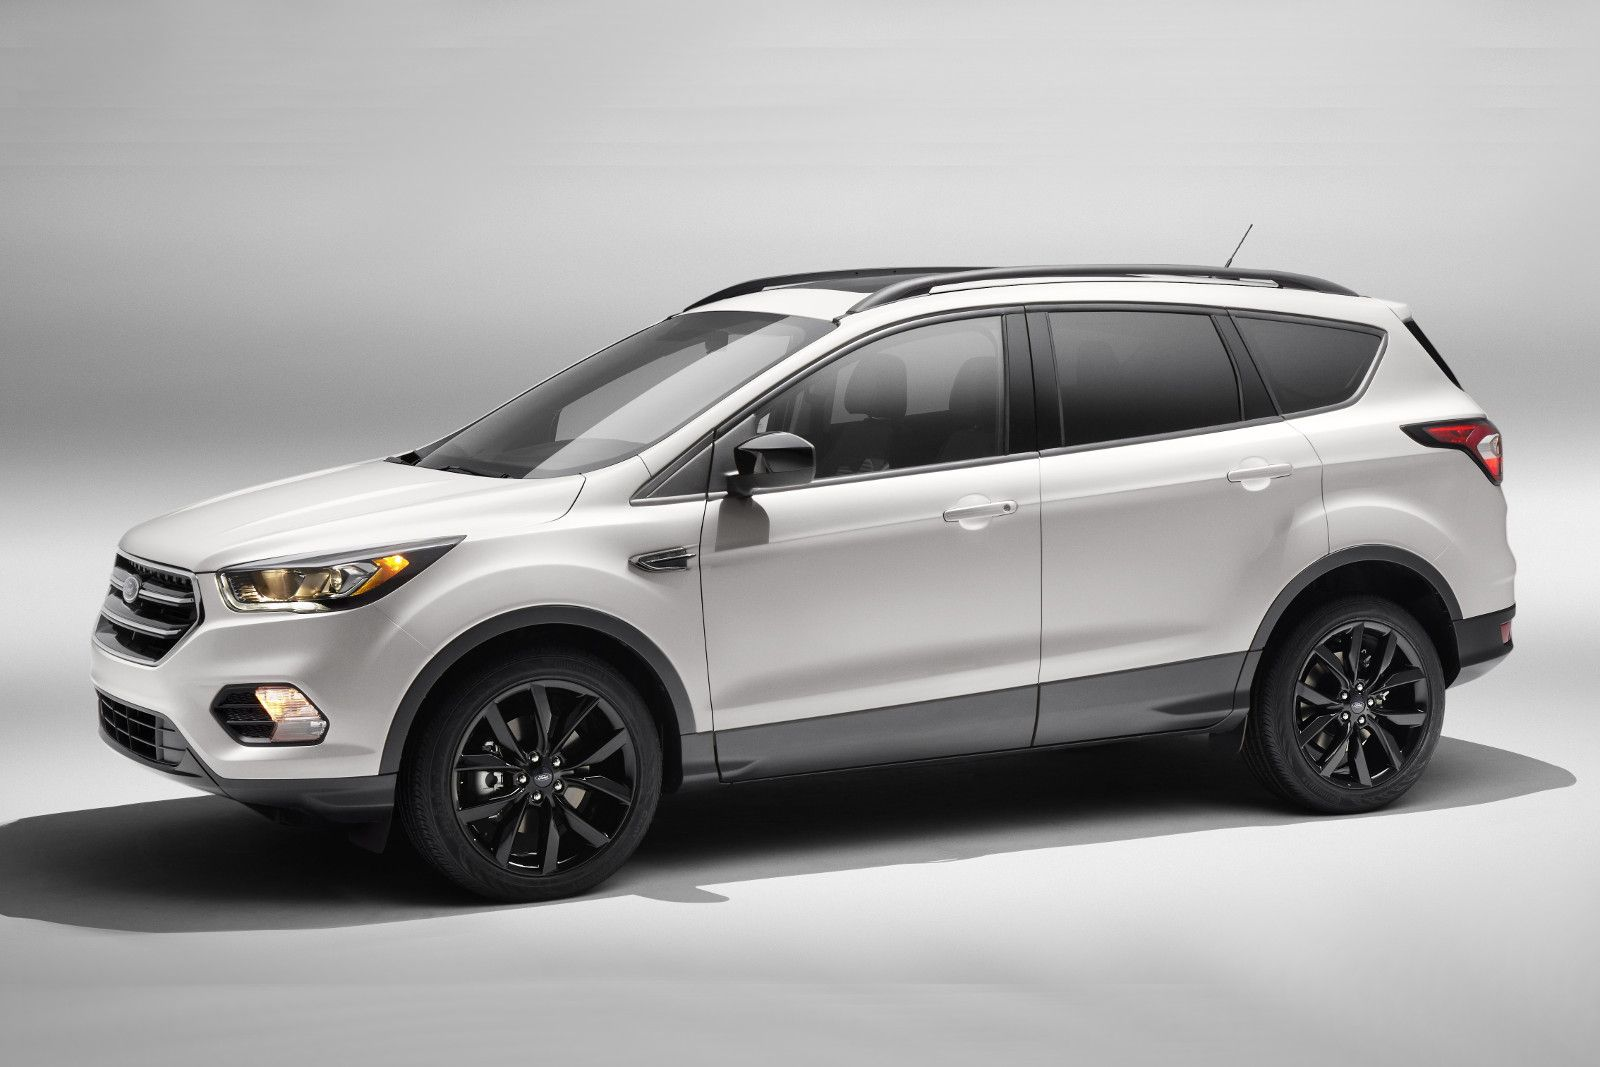 neuer ford kuga 2017 ford kuga pinterest ford and cars. Black Bedroom Furniture Sets. Home Design Ideas